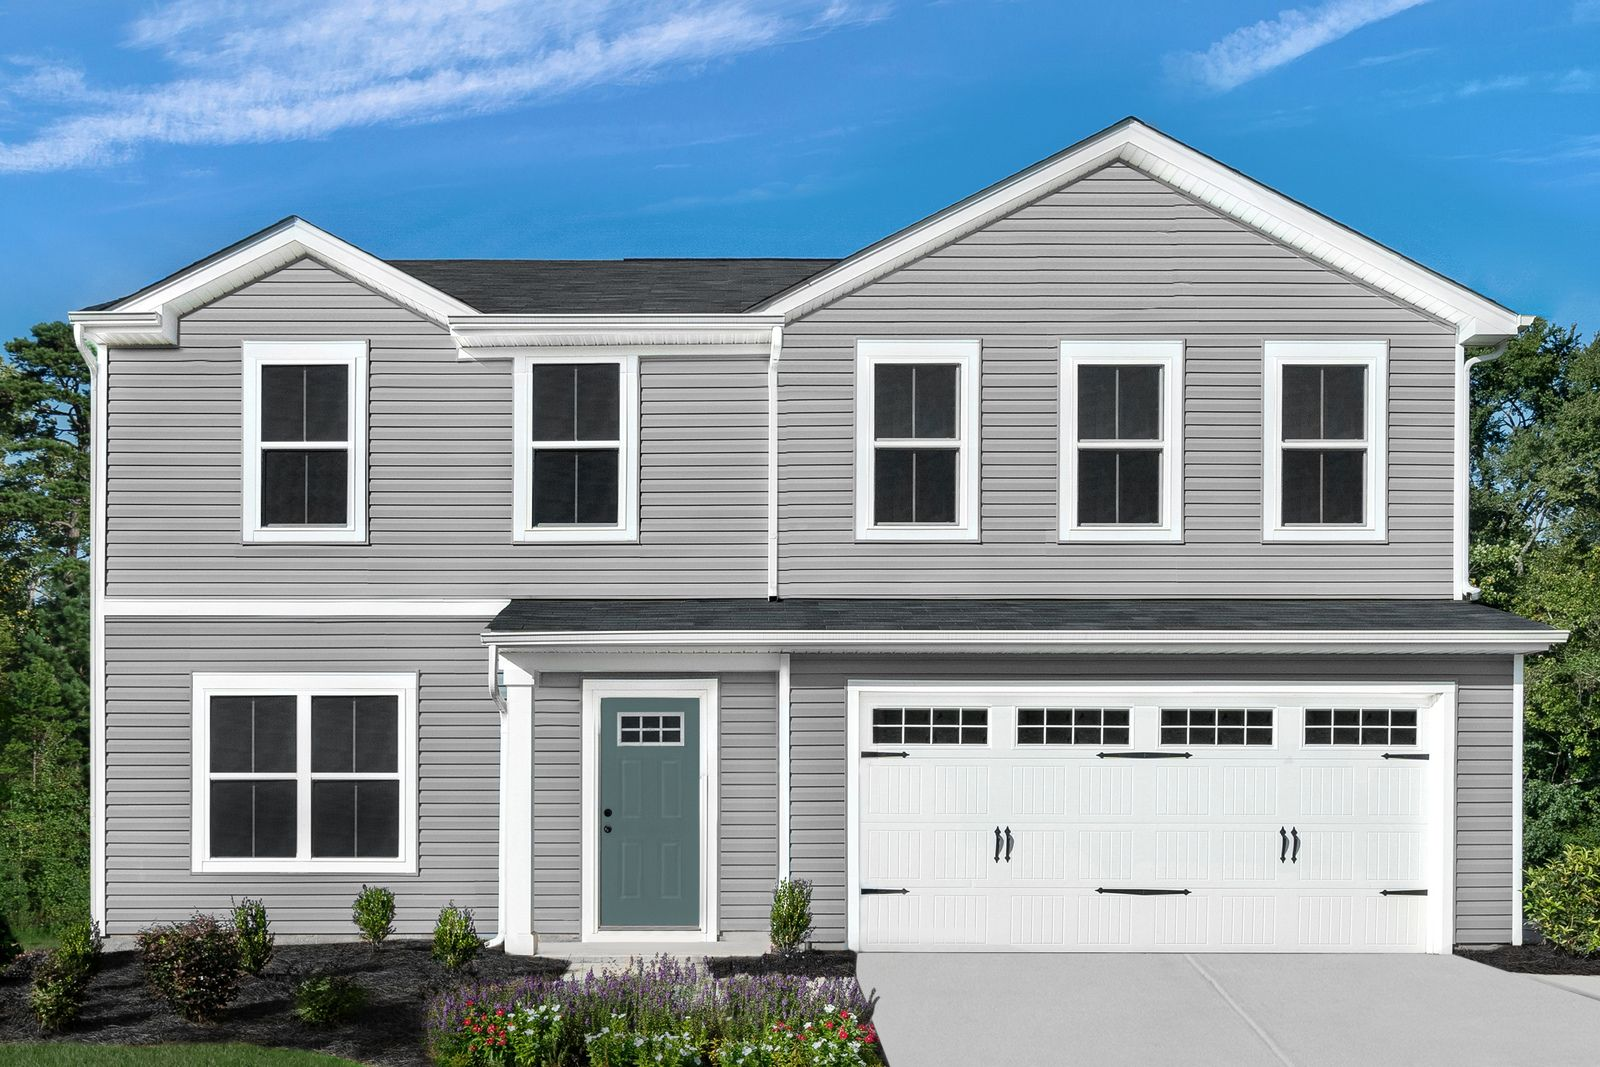 Best Value New Homes in Cabarrus County:Schedule a visitto learn more about owning a new home near Hwy 49 and 601 with easy access to downtown Concord and Harrisburg